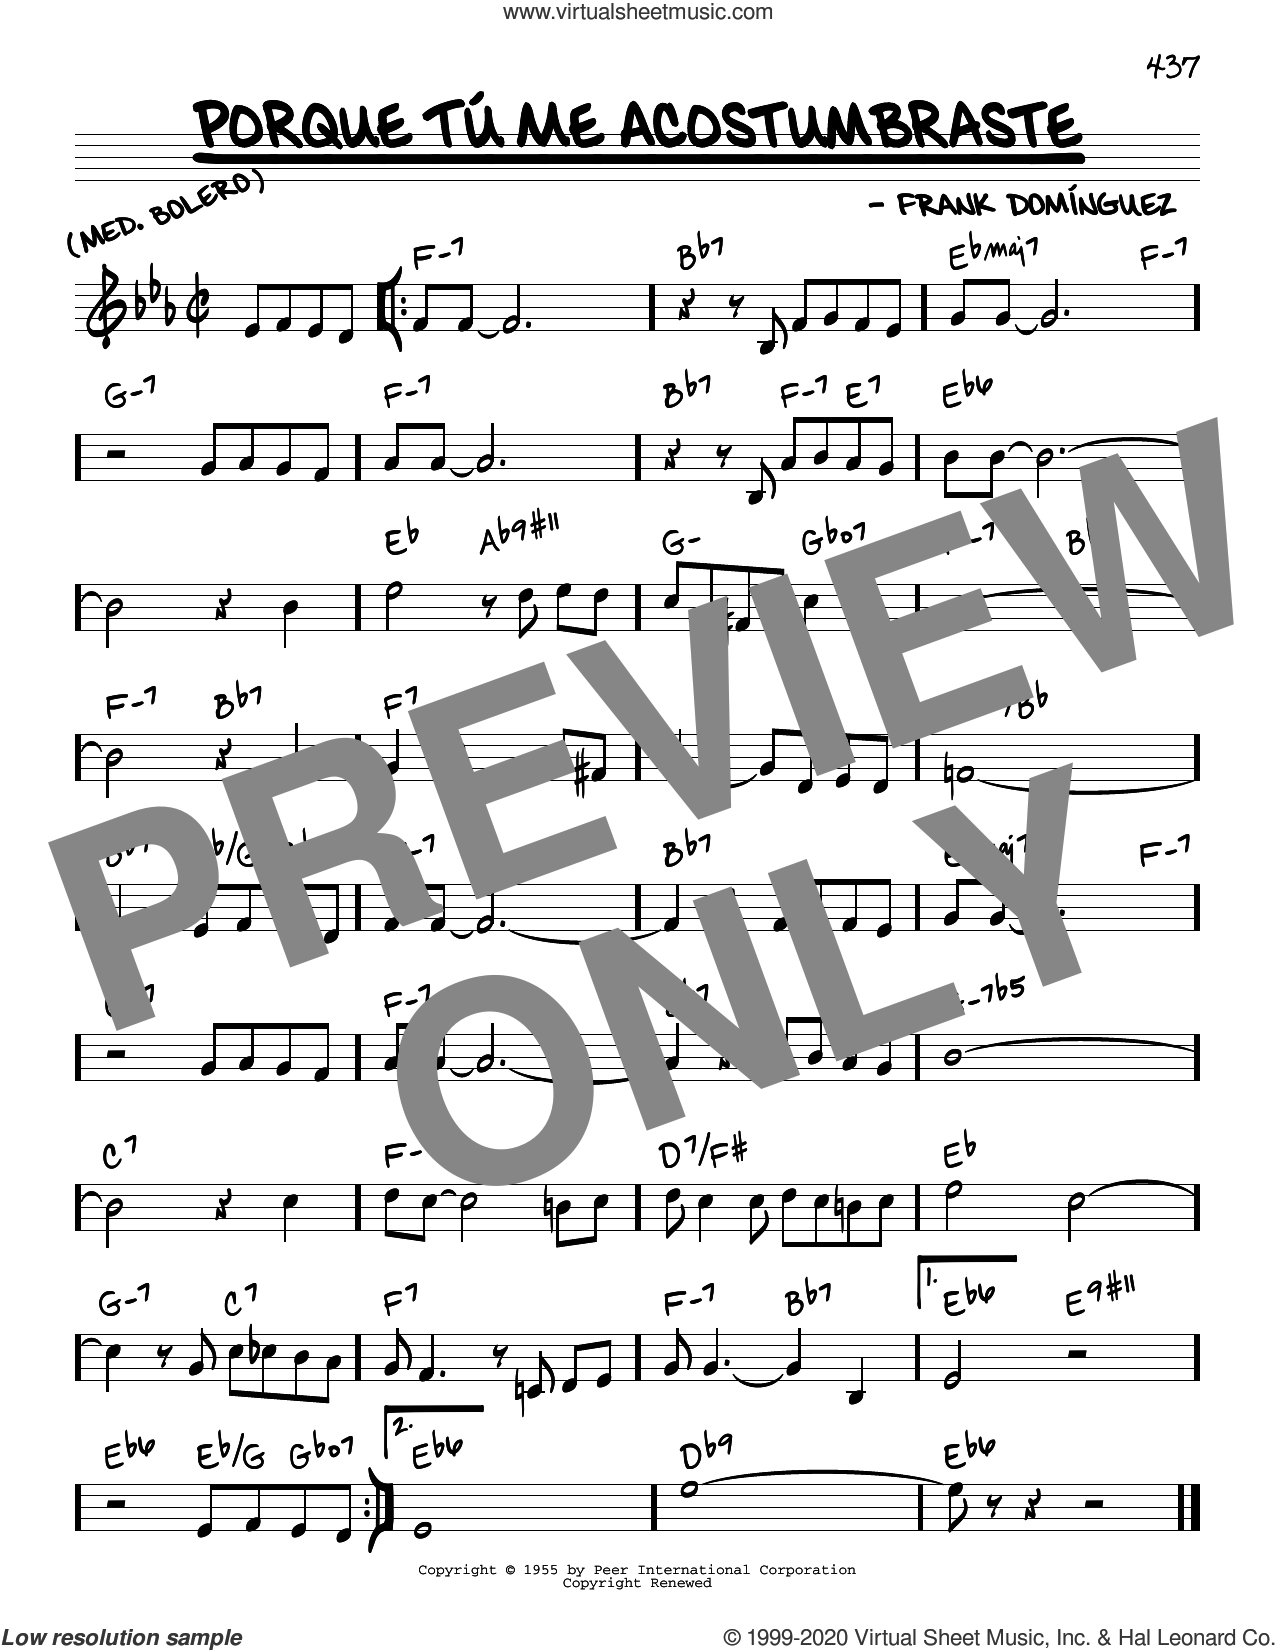 Porque Tu Me Acostumbraste sheet music for voice and other instruments (real book) by Frank Dominguez, intermediate skill level